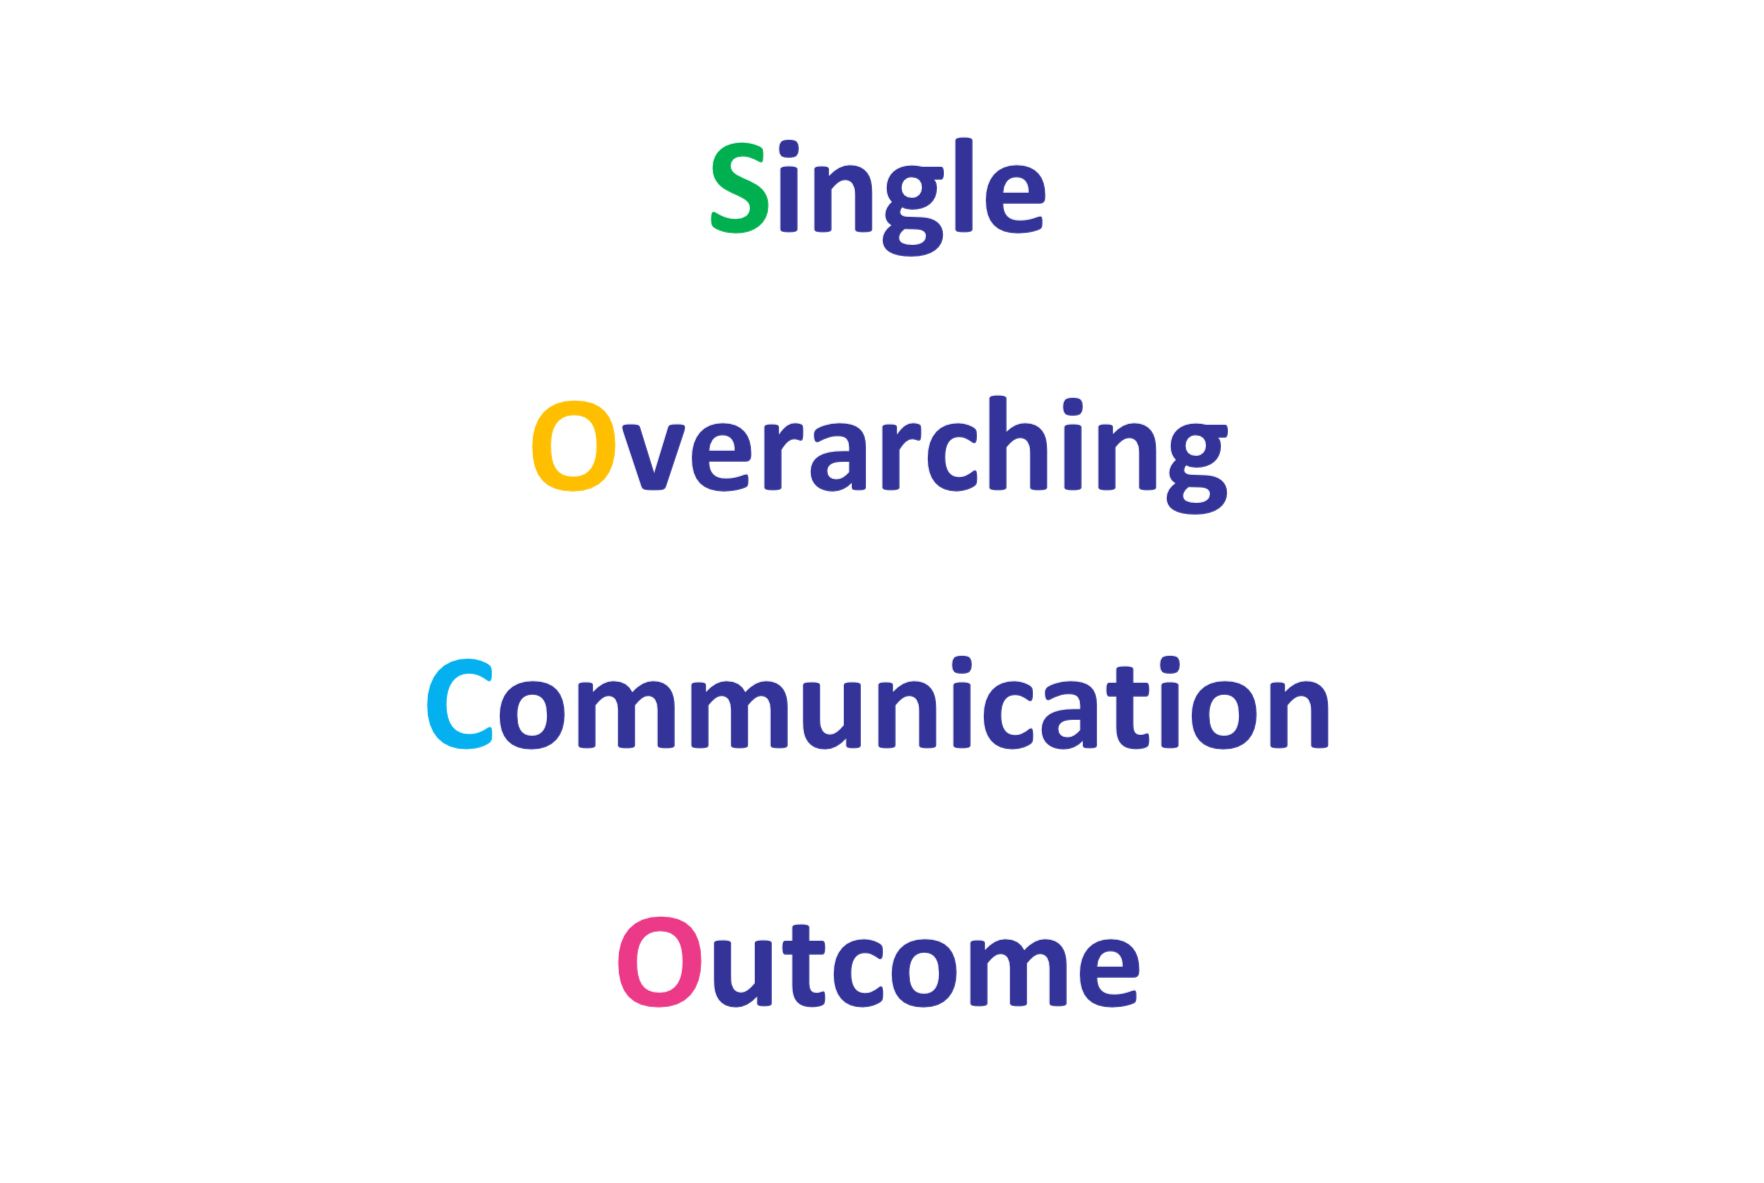 Single Overarching Communication Outcome